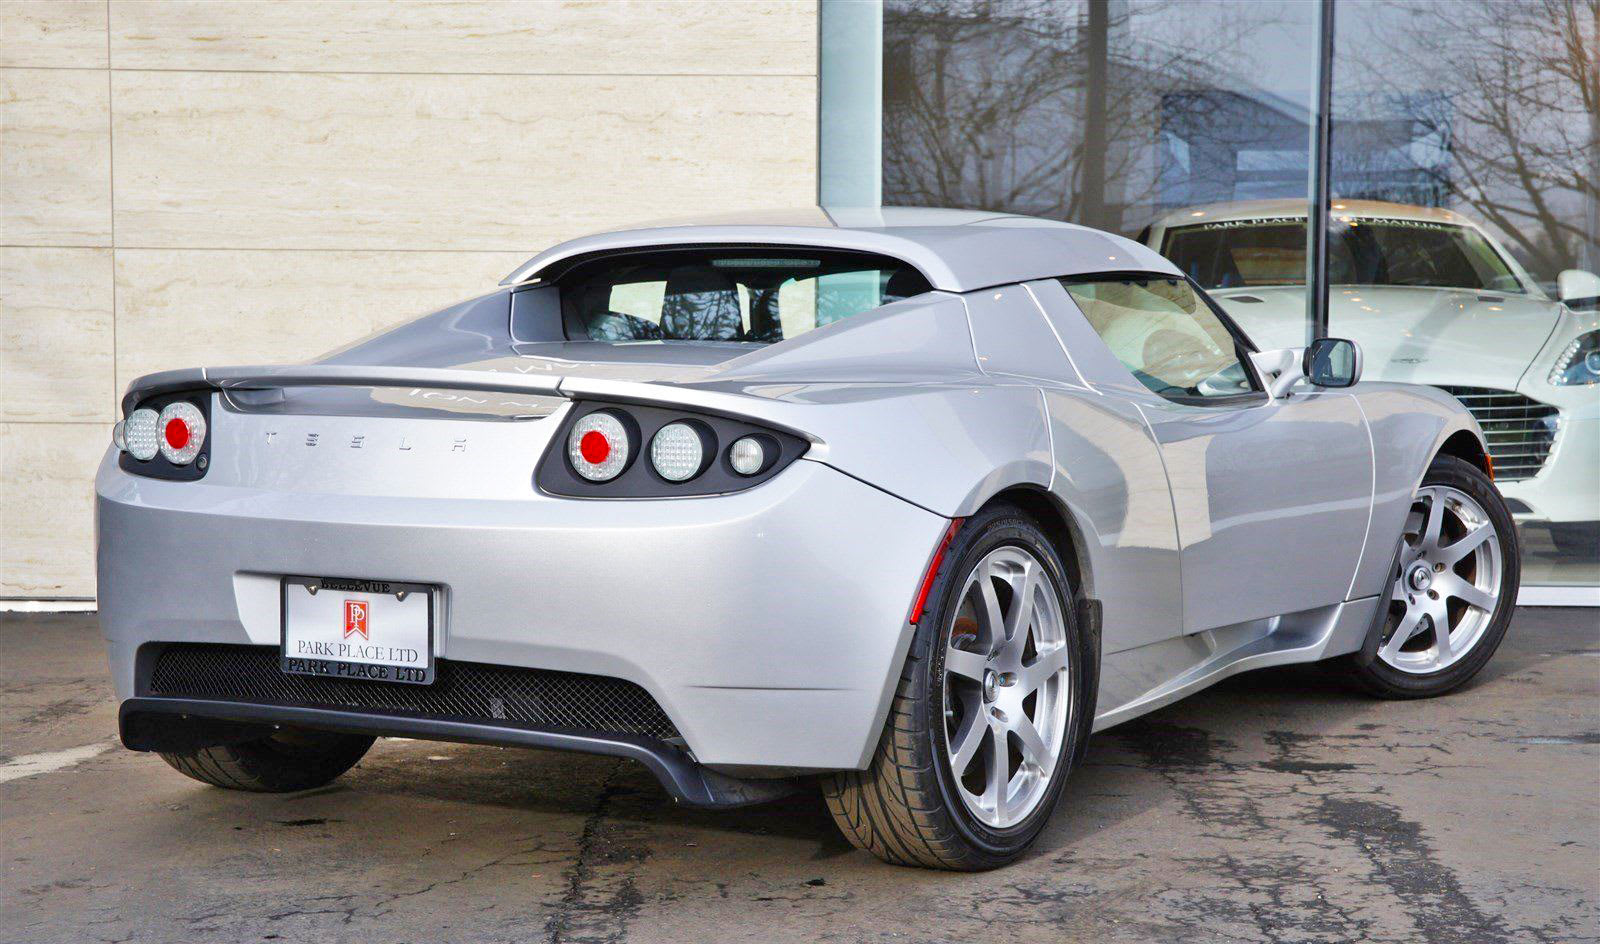 Tesla Roadster prototype up for auction starting at $1 million